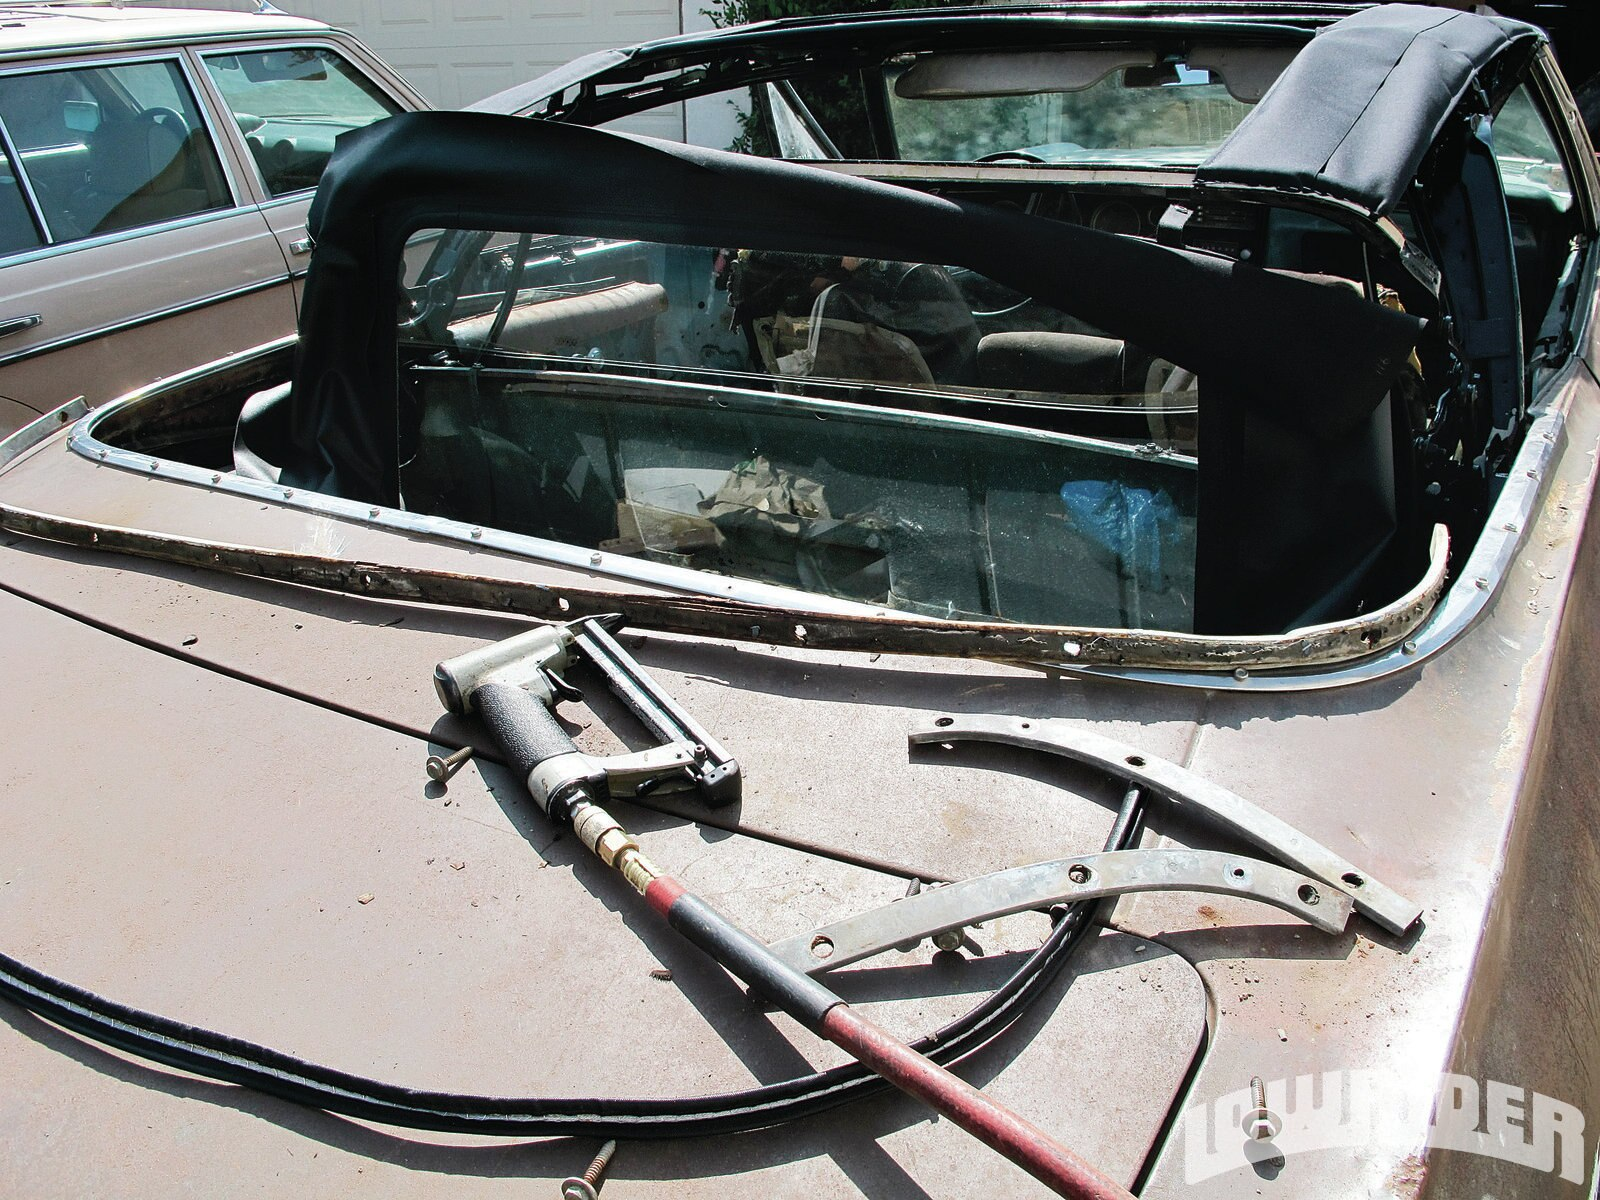 lrmp-1207-01-o-convertible-top-install-project1